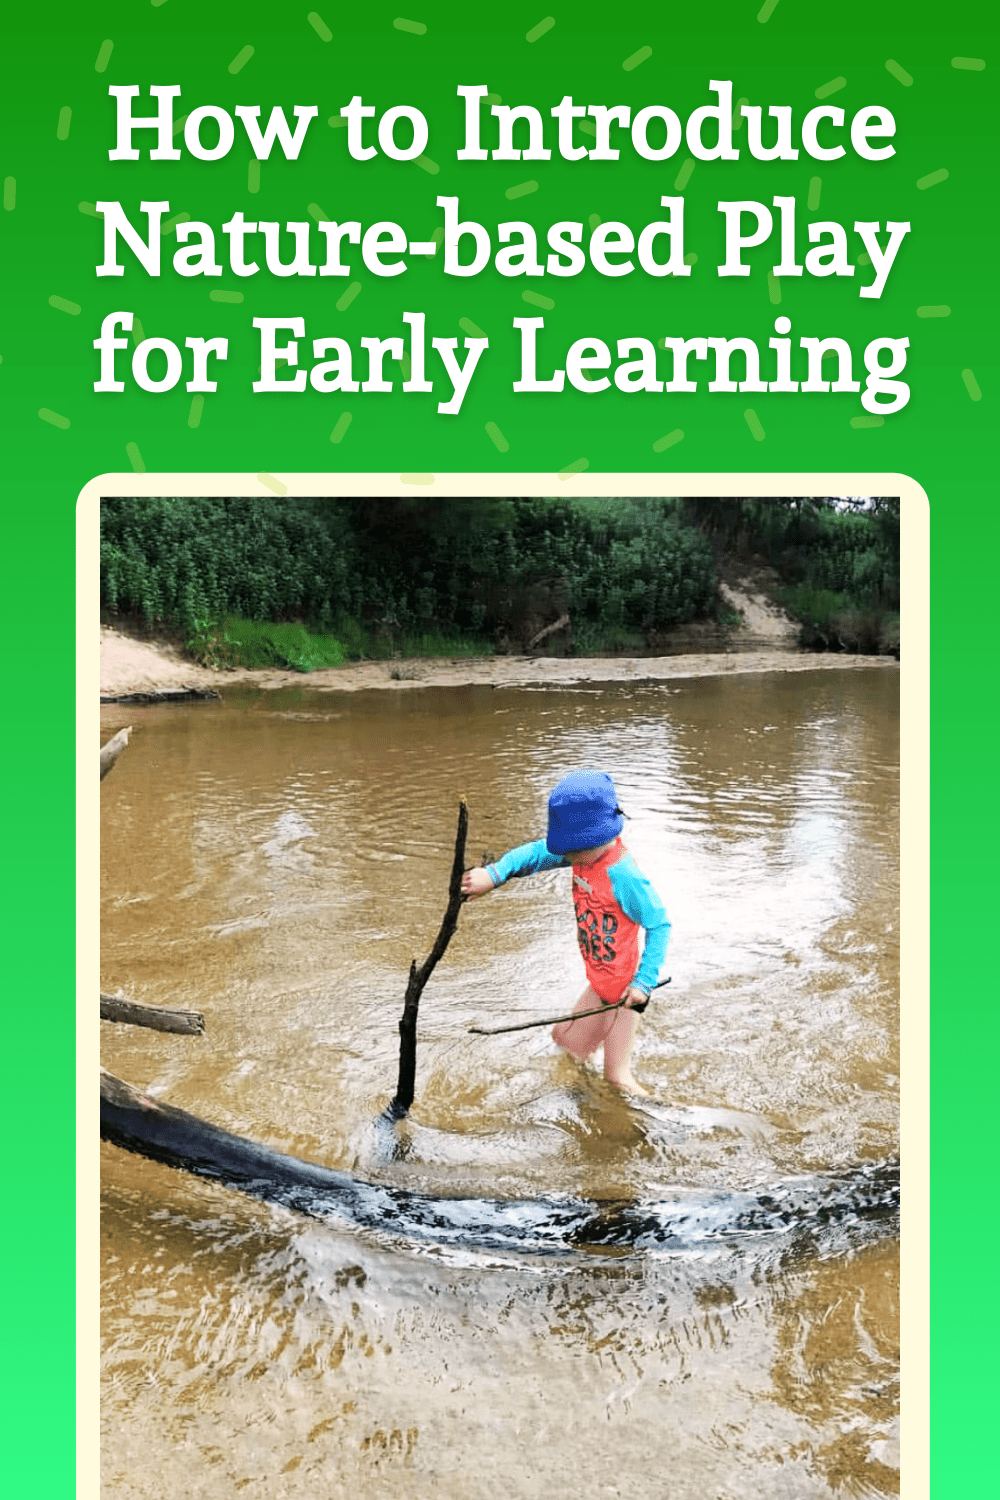 How to Introduce Nature-based Play for Early Learning